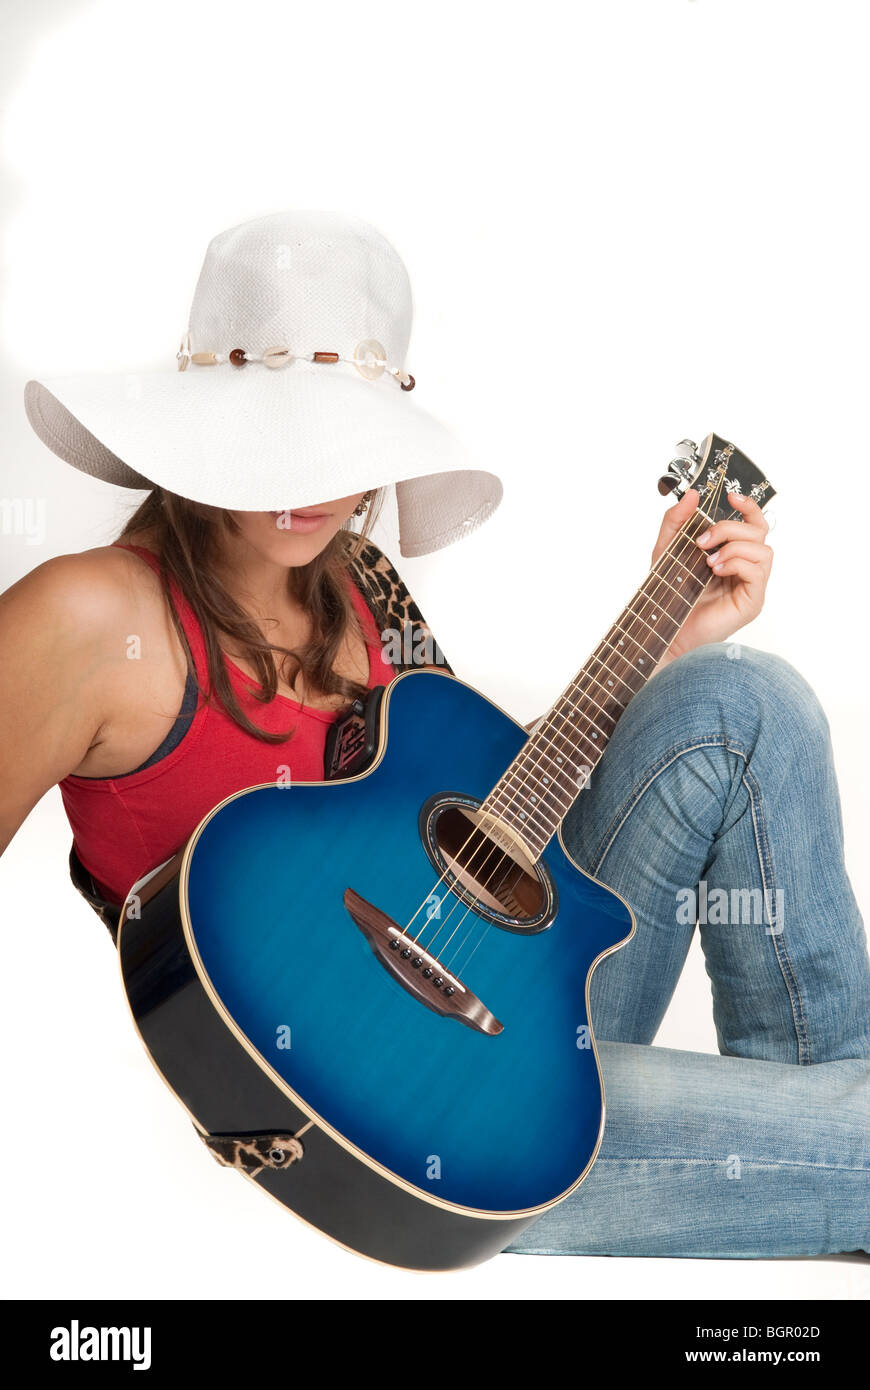 a young girl smiling, holding a guitar - Stock Image